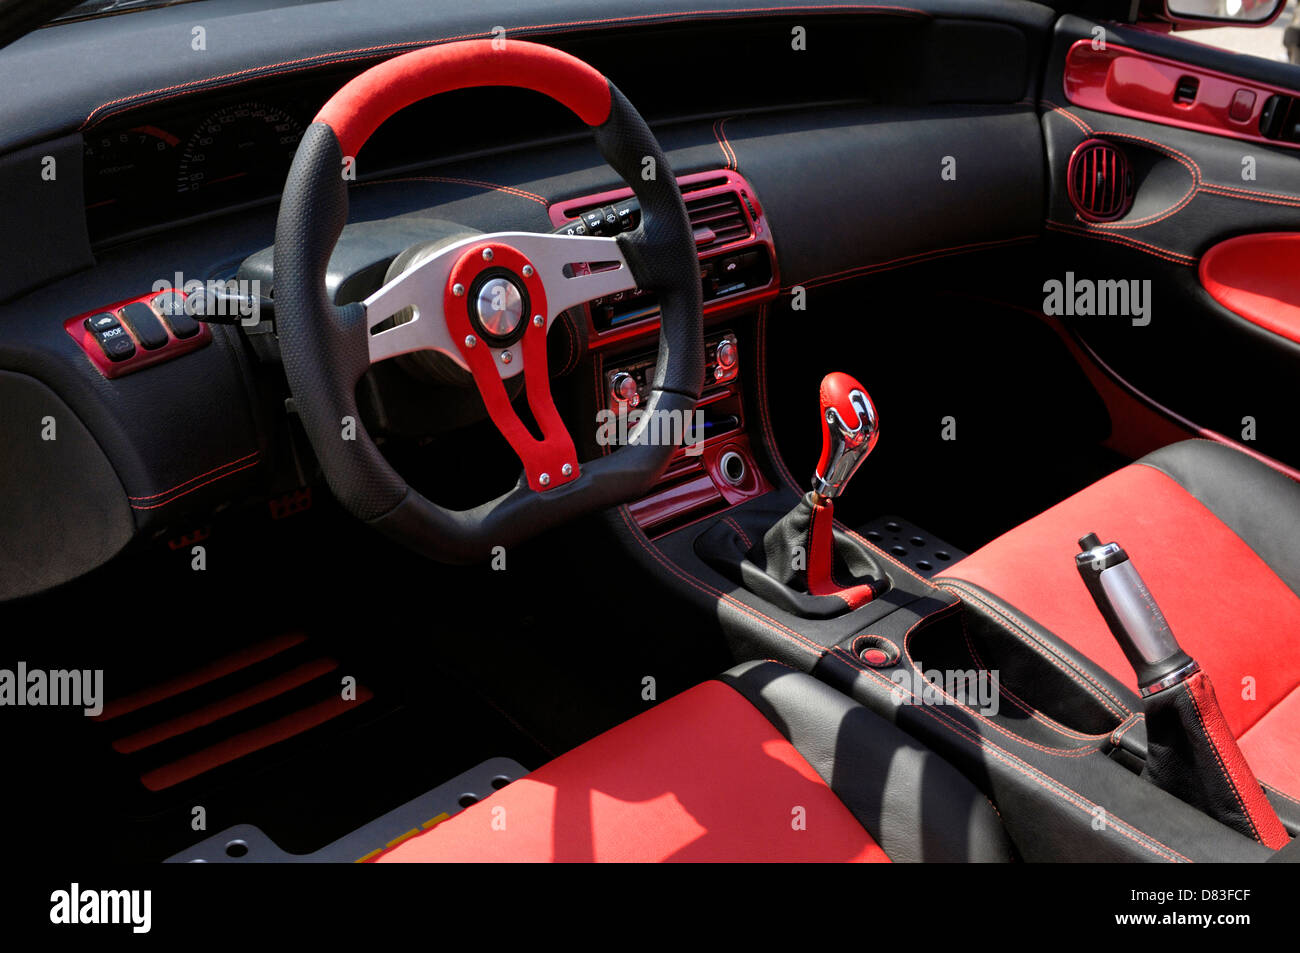 custom car red and black leather interior stock photo. Black Bedroom Furniture Sets. Home Design Ideas